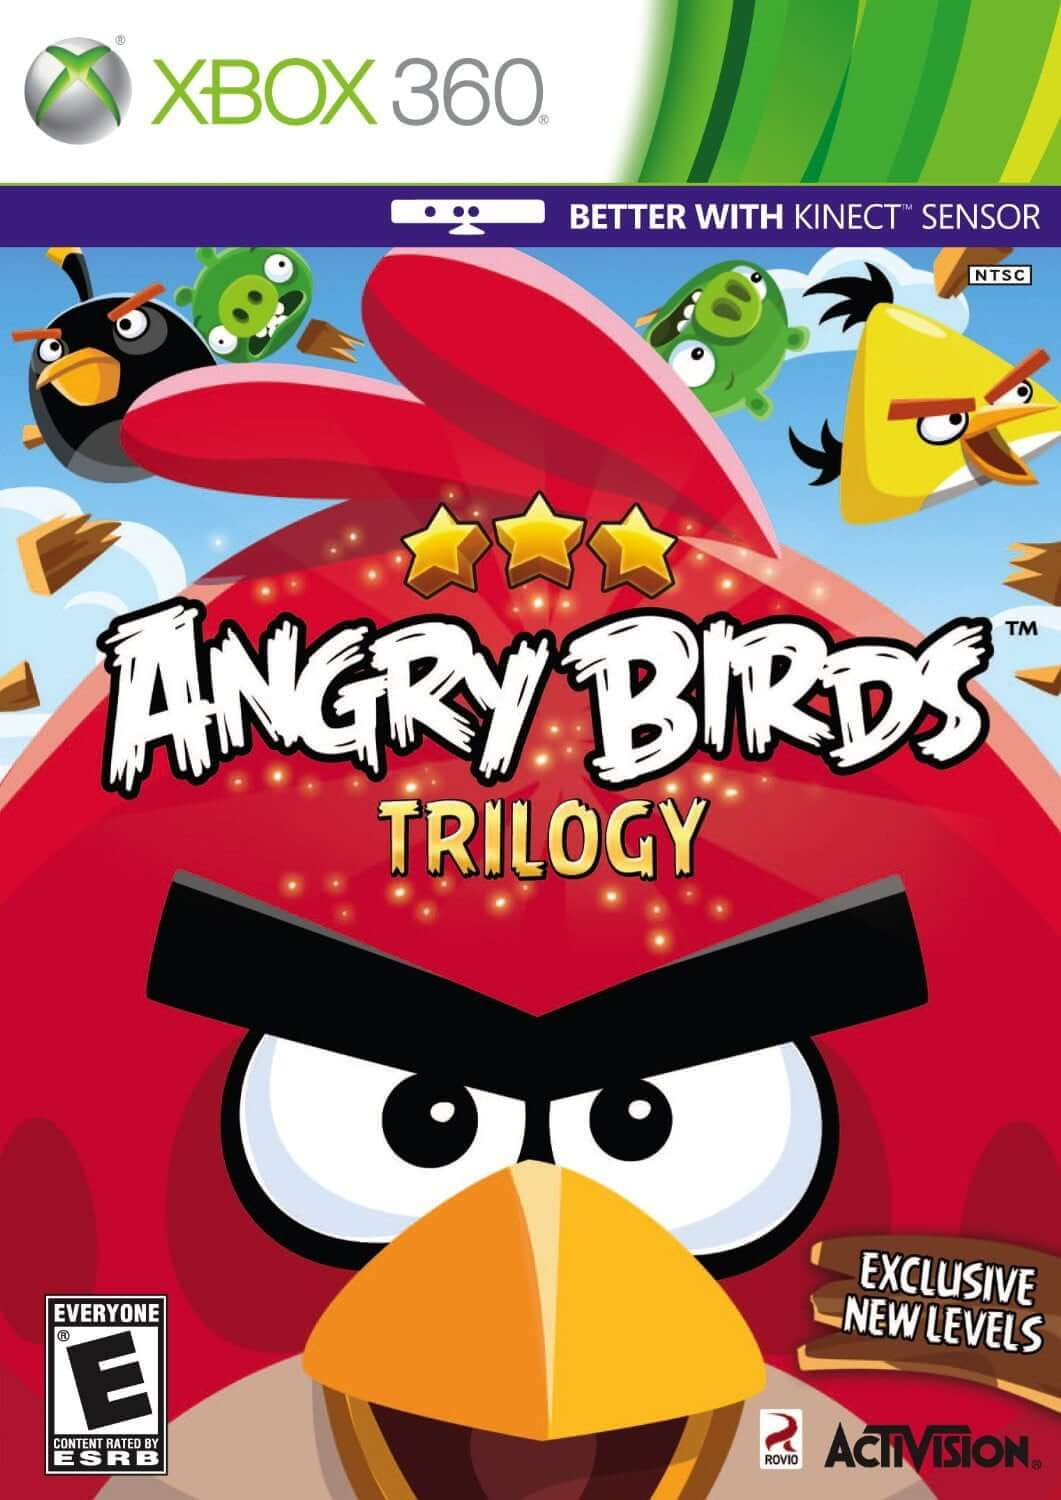 Buy Angry birds(PS4) a XBOX 360 Game from ShamyStores